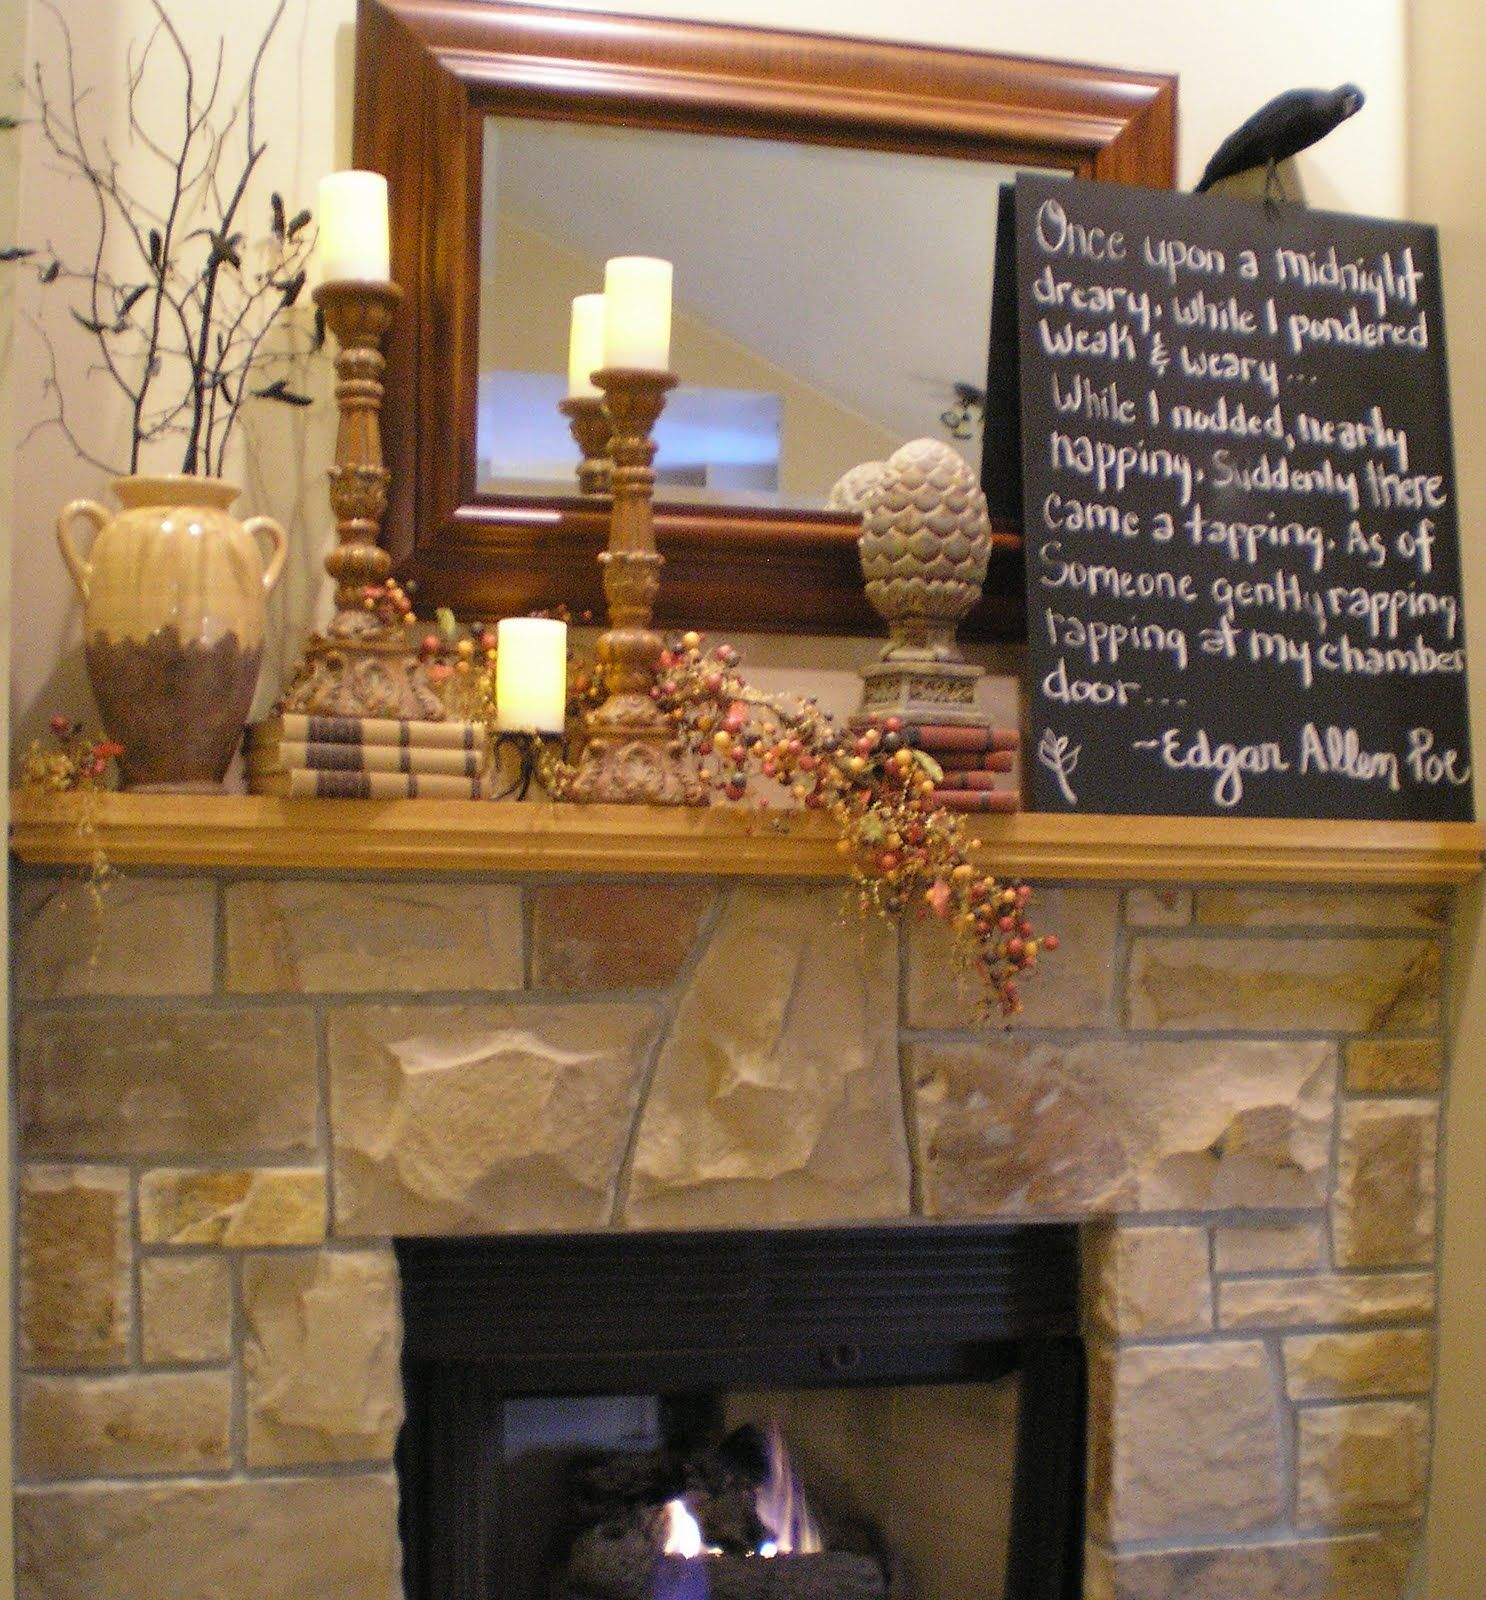 Wip Blog Autumn Mantel Decor Ideas Fireplace Mantel Decor Fireplace Mantels Fireplace Decor